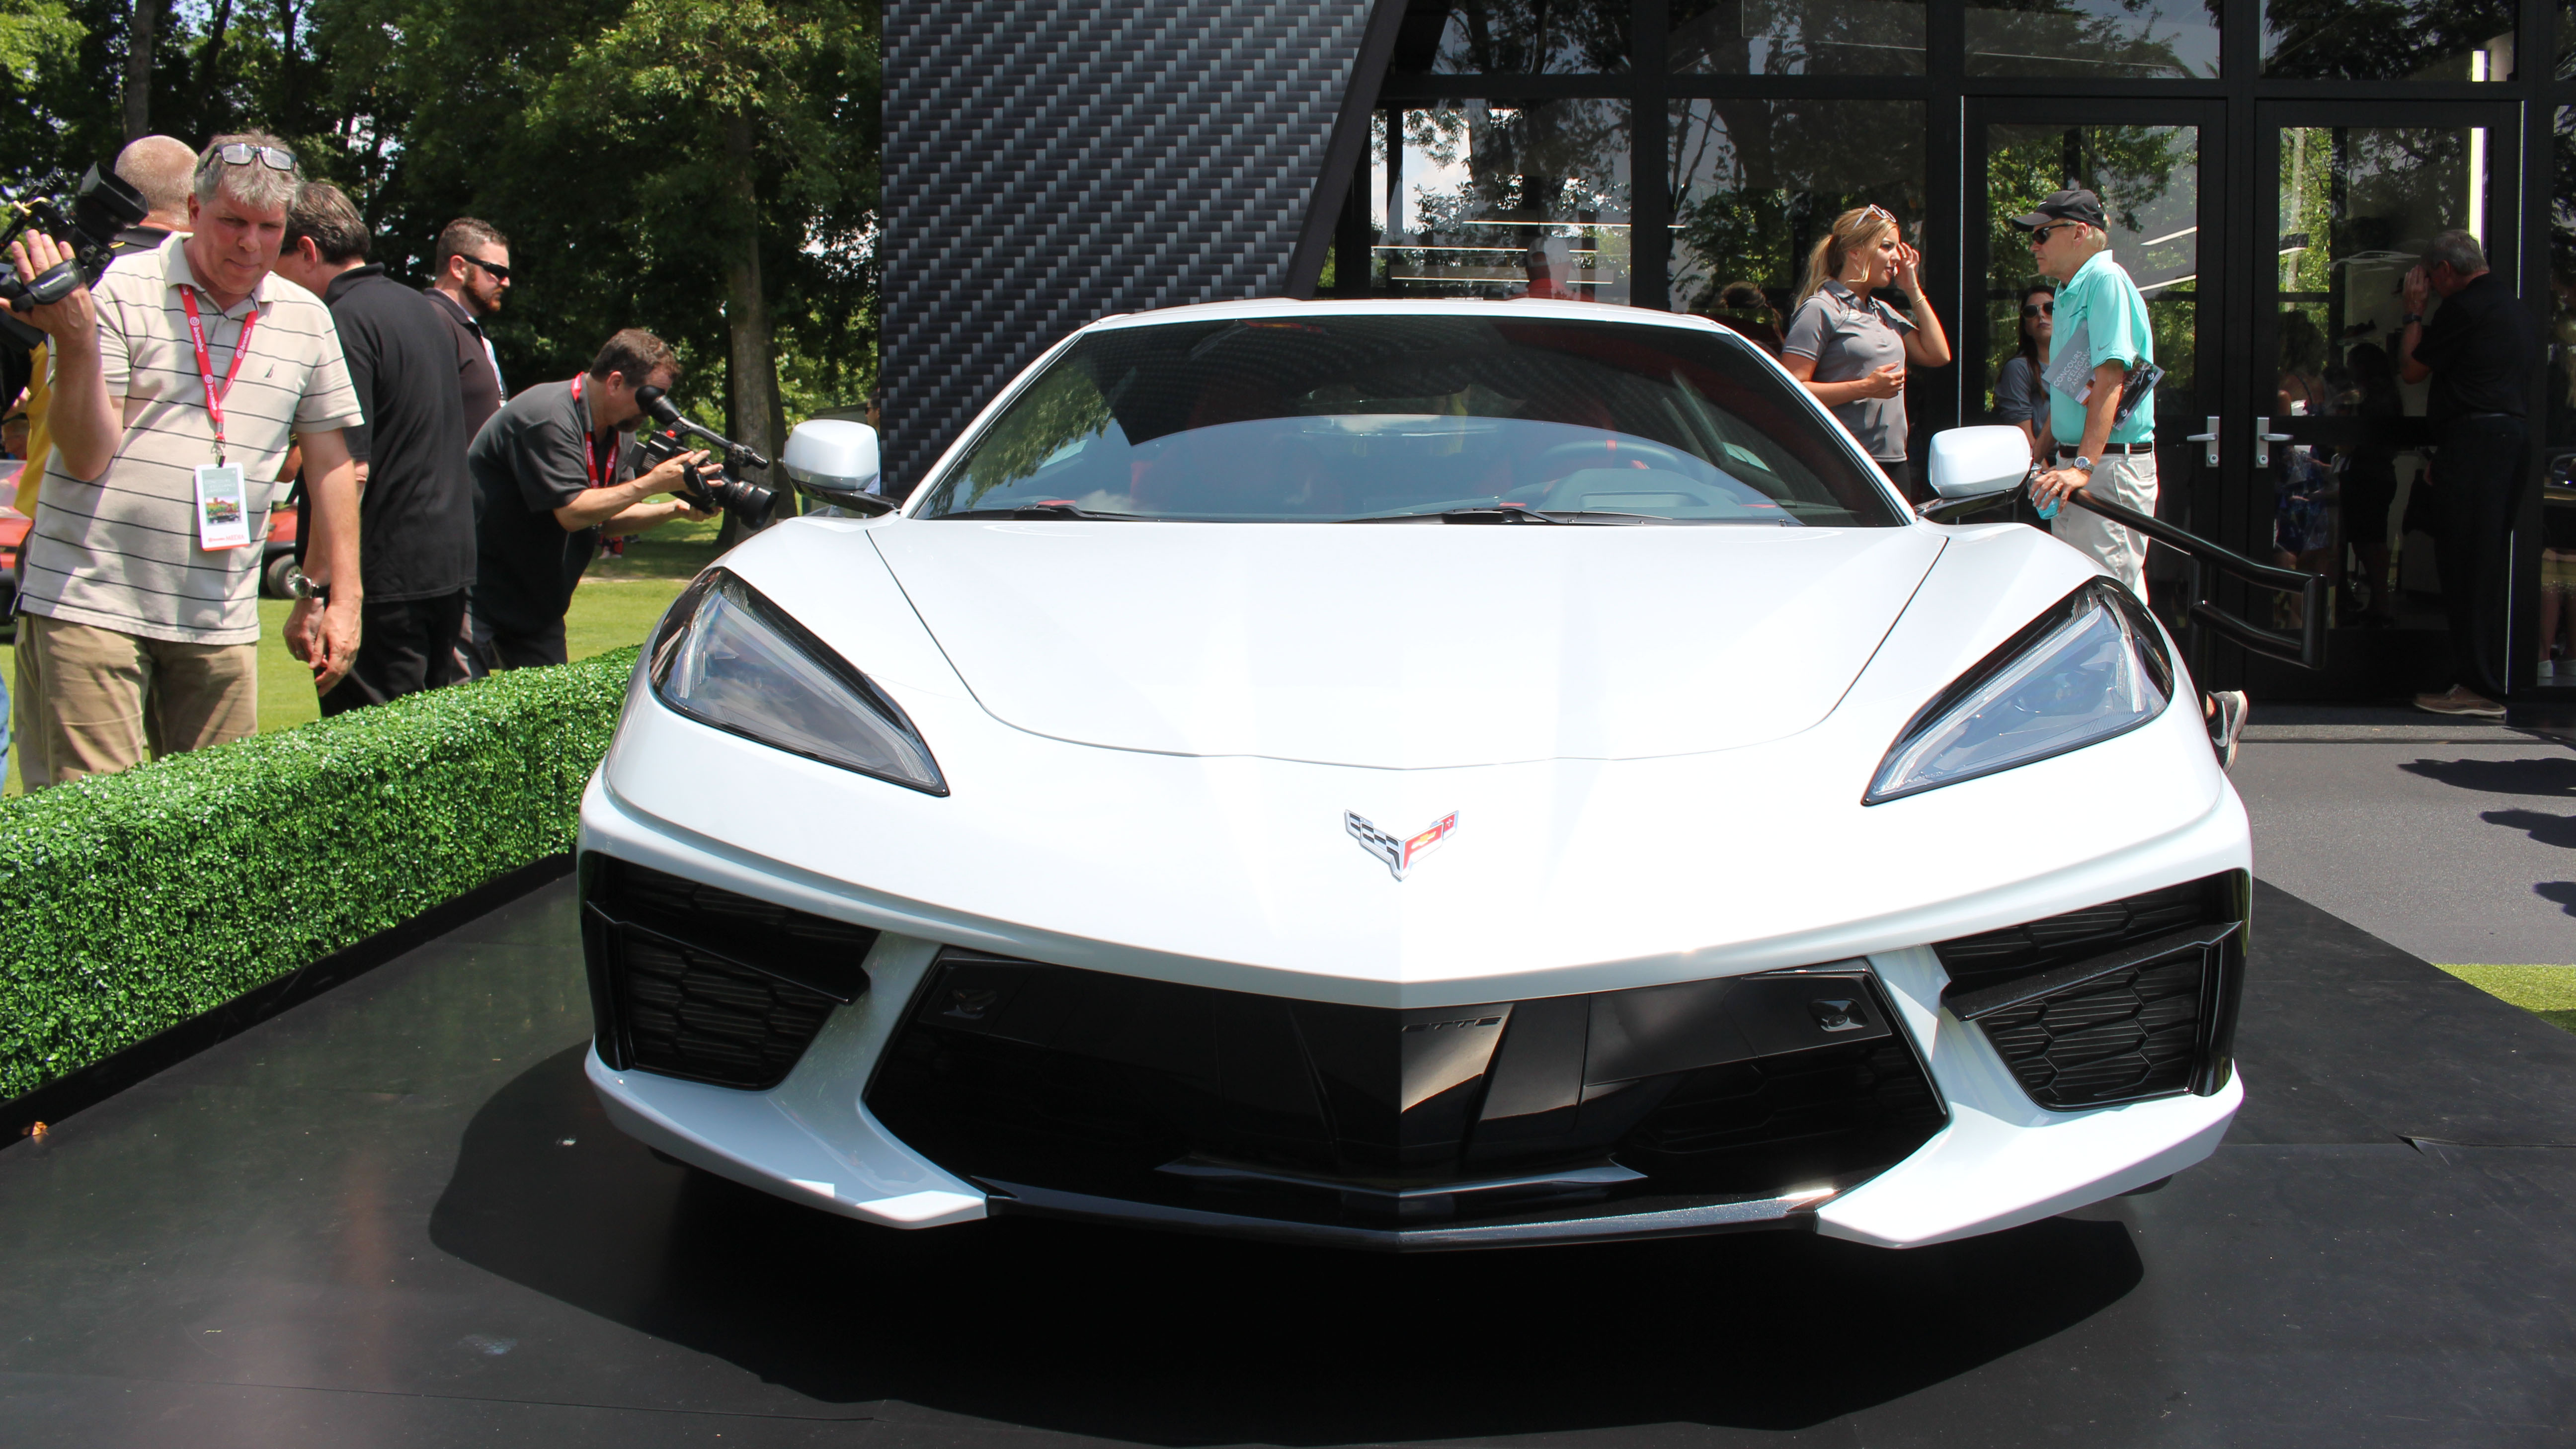 2020 Chevy Corvette analysis from the Concours d'Elegance ...